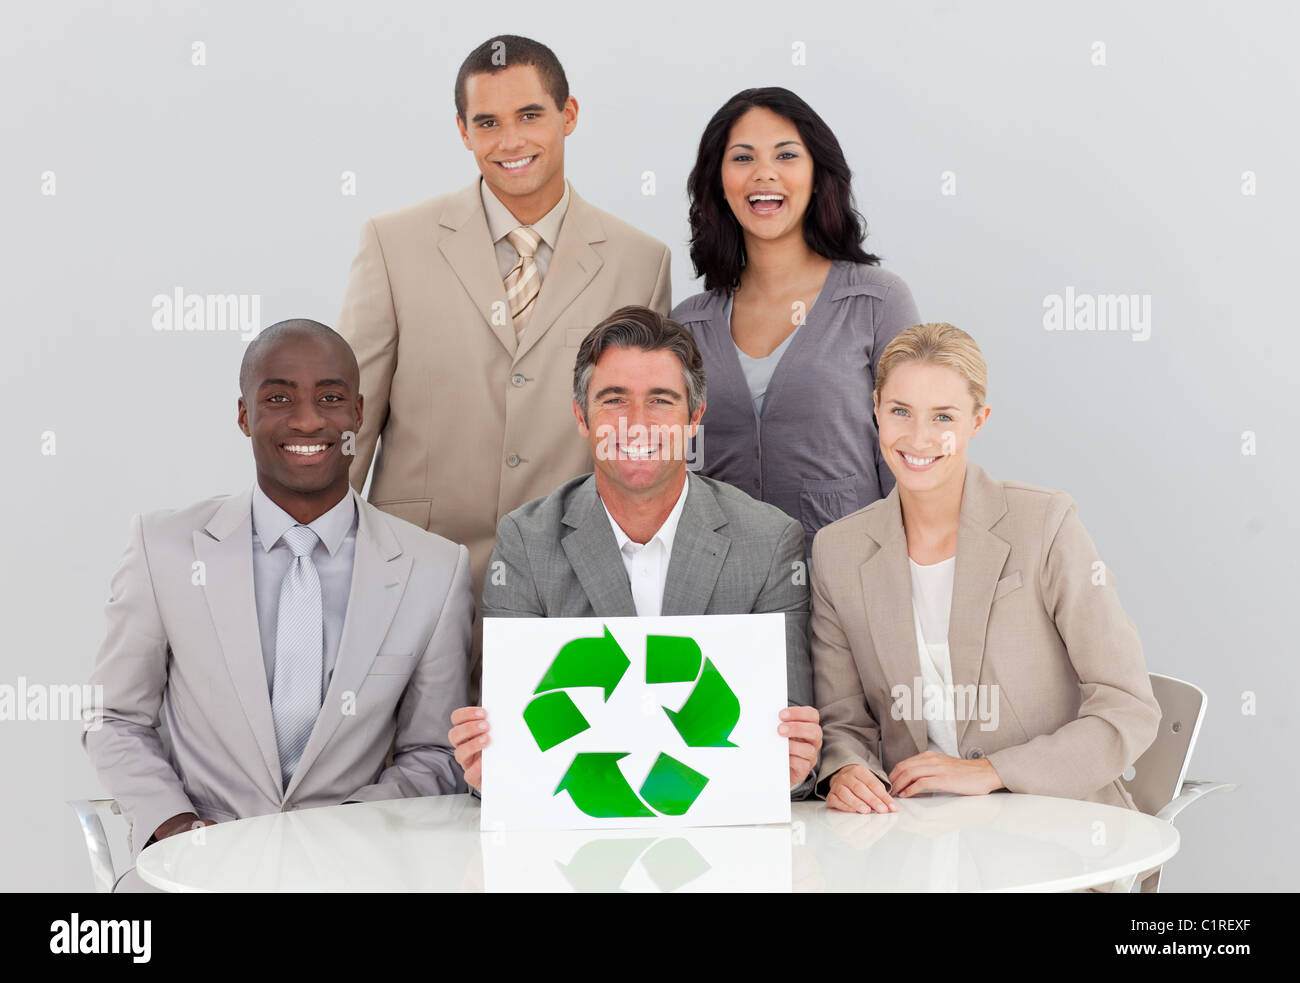 Good environmental practices in a meeting - Stock Image